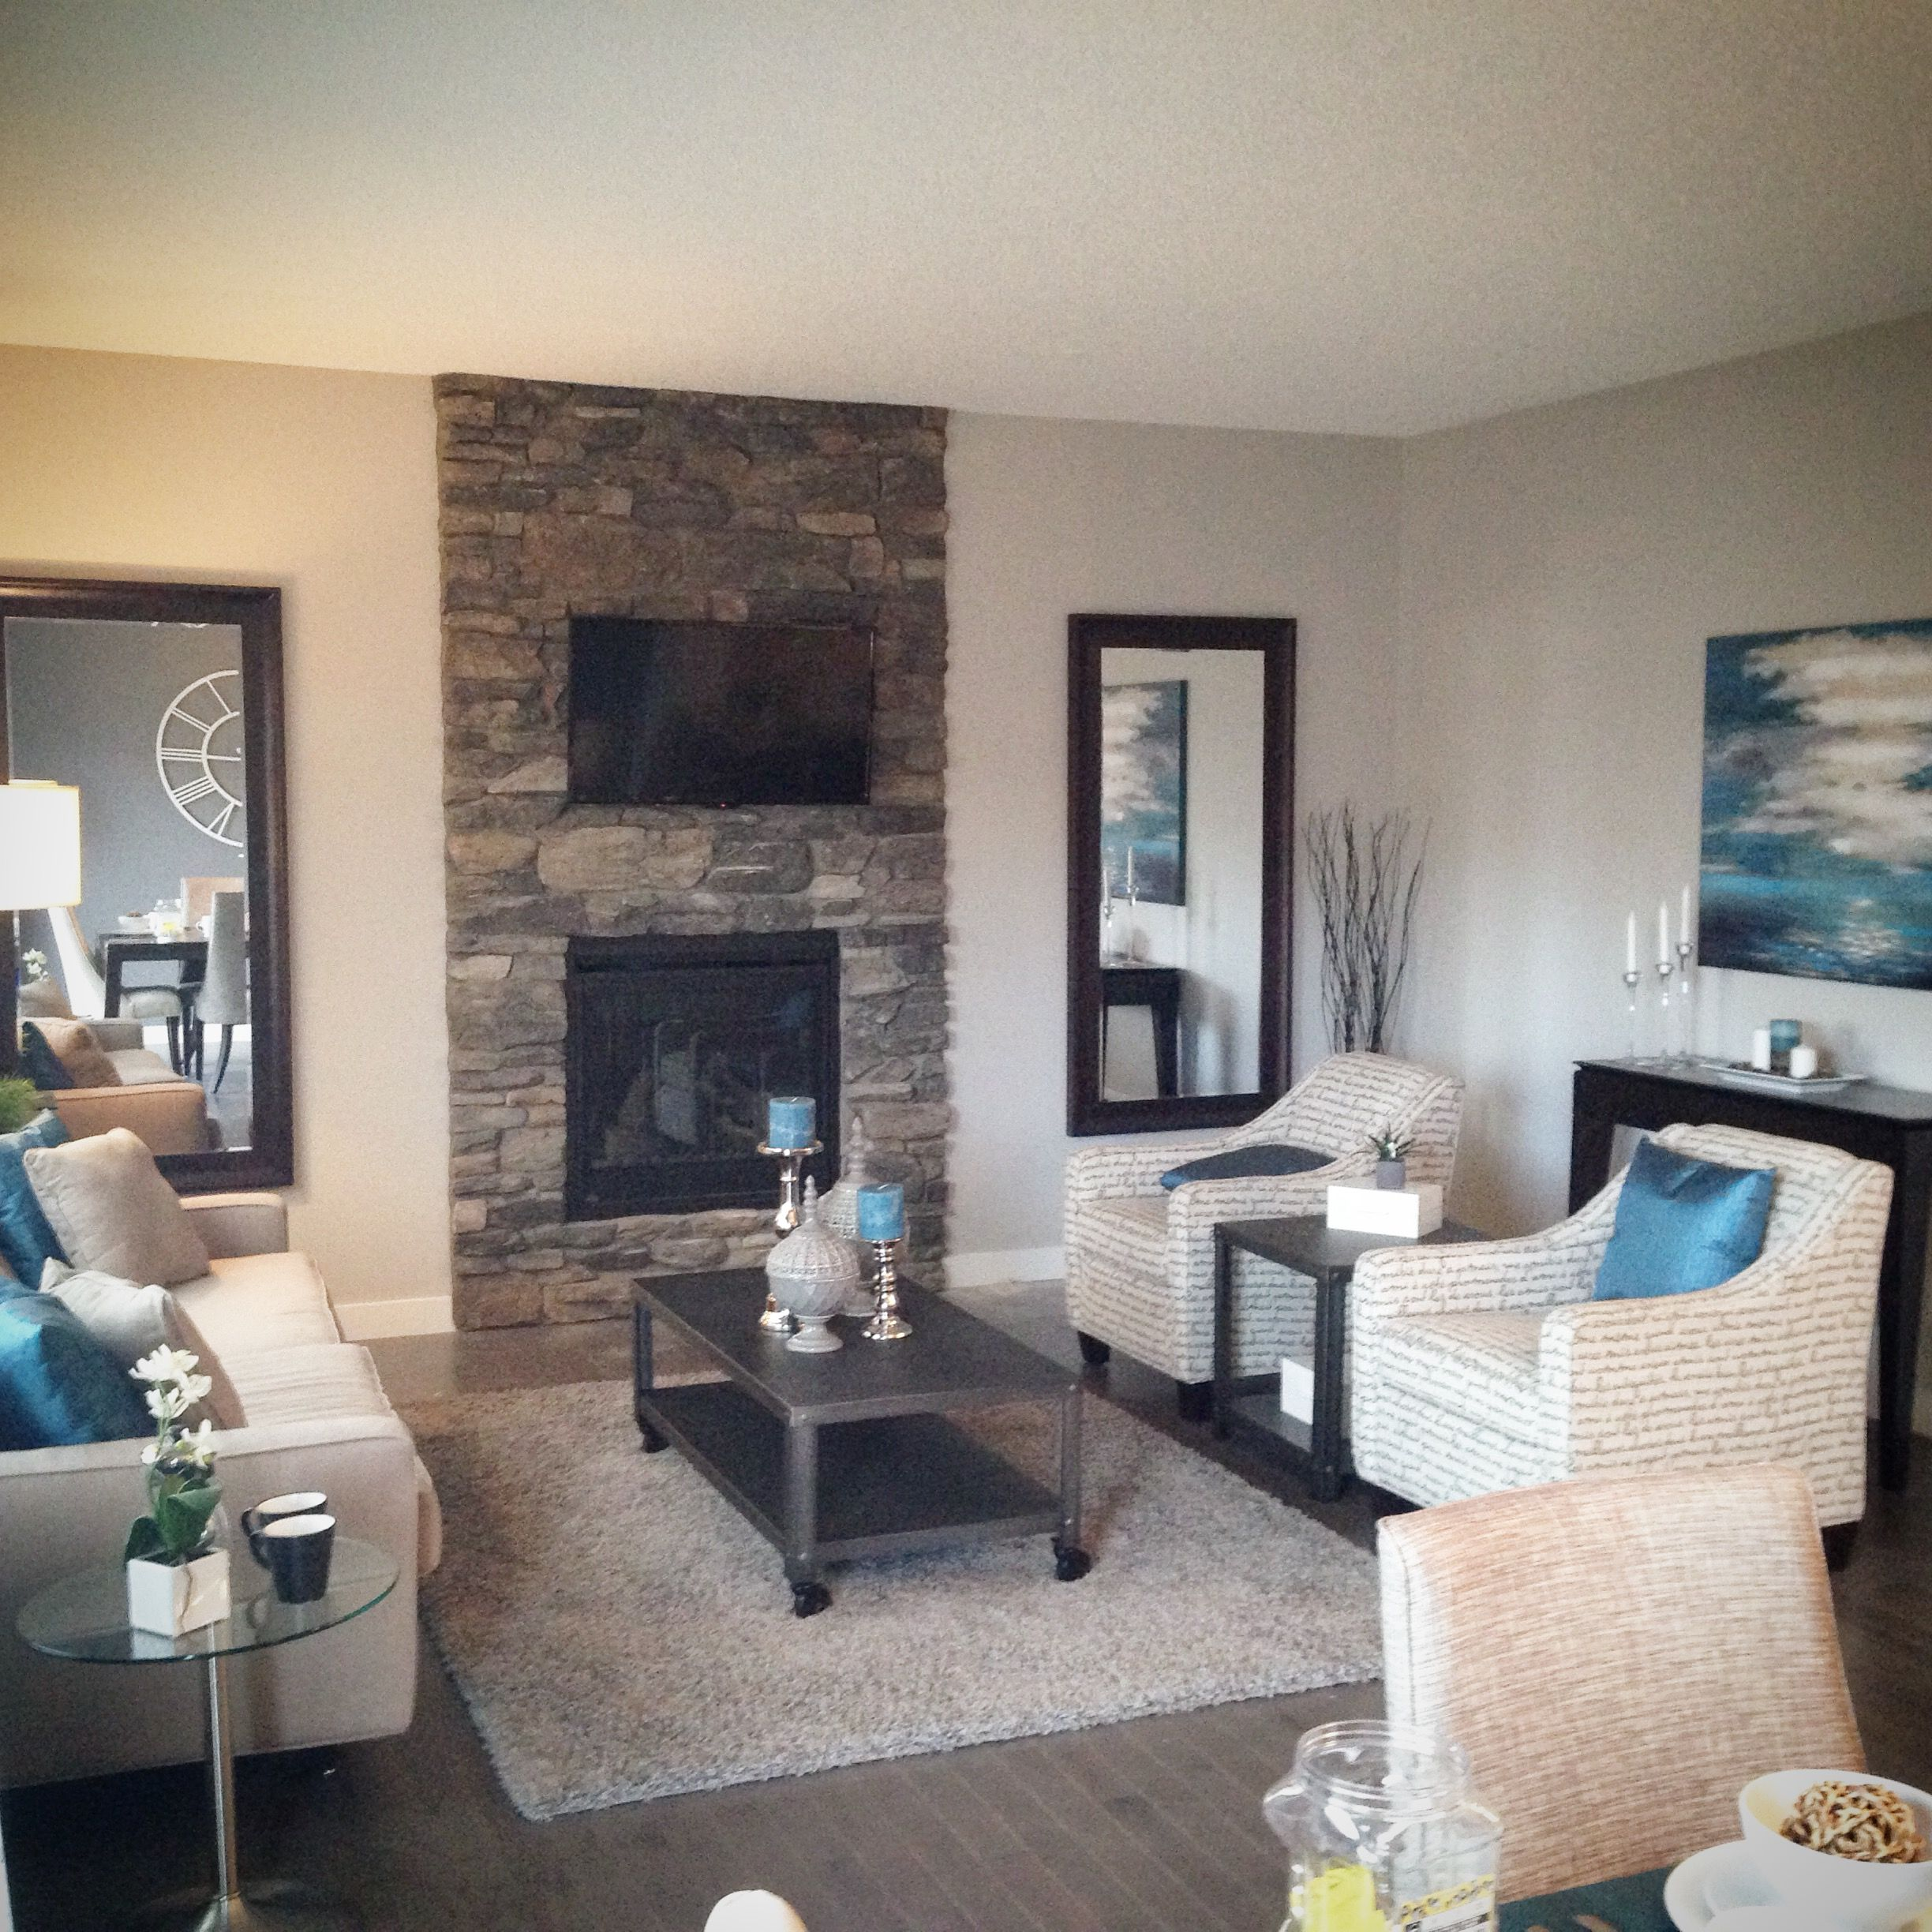 living room greatroom decor design with teal blue accents and